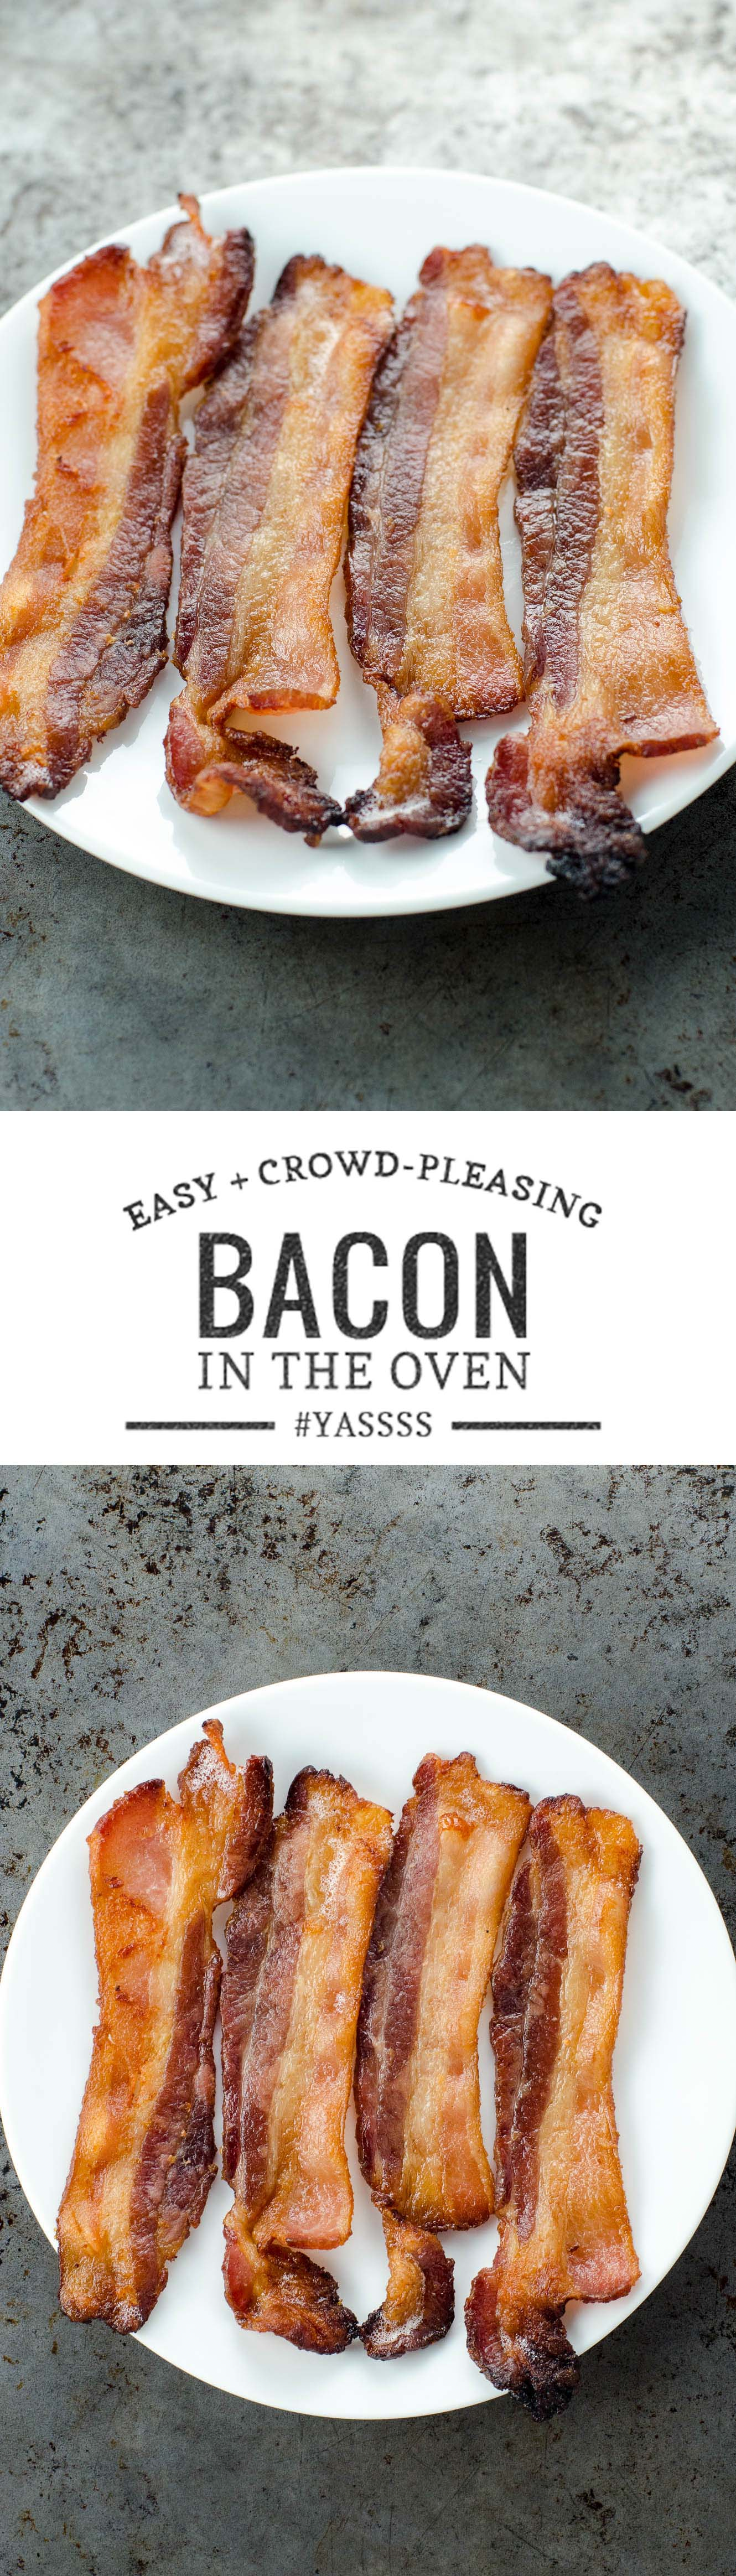 Make bacon in the oven for an easy, hands-off process and consistent results. Works well for a few or a crowd.